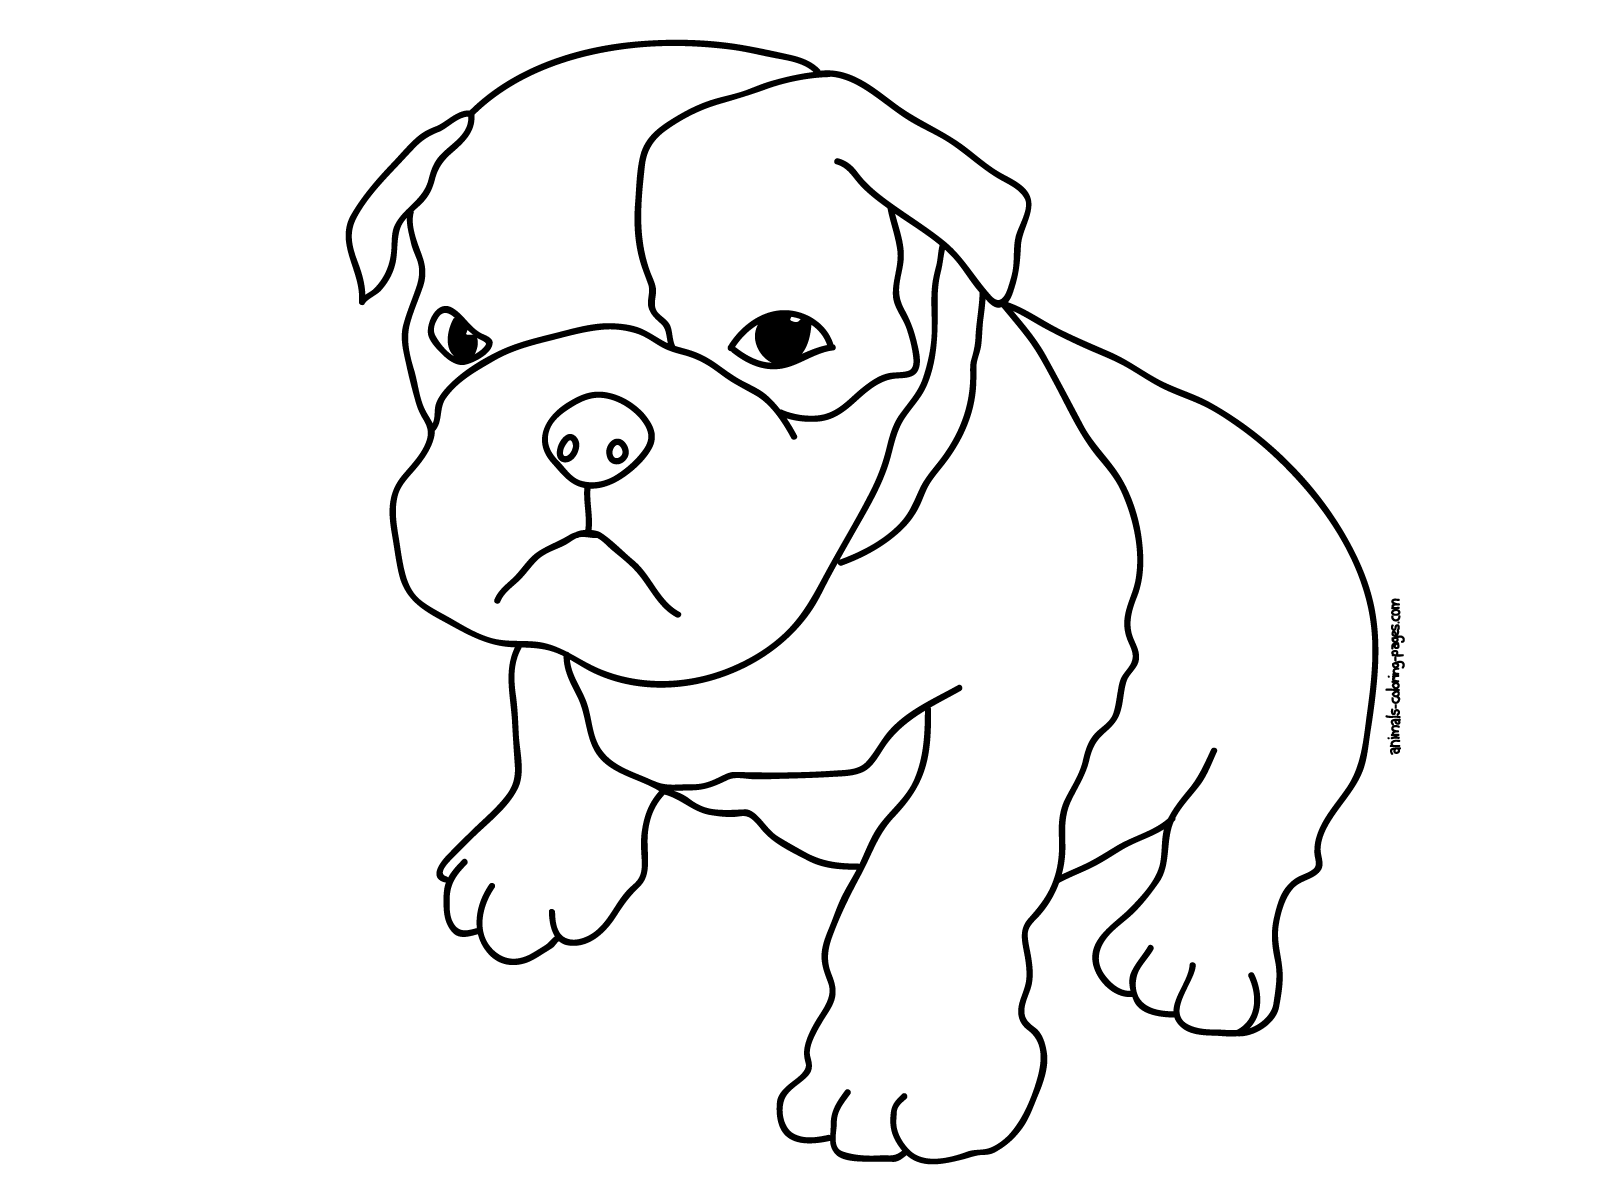 pitbull coloring pages pitbull coloring pages to download and print for free coloring pitbull pages